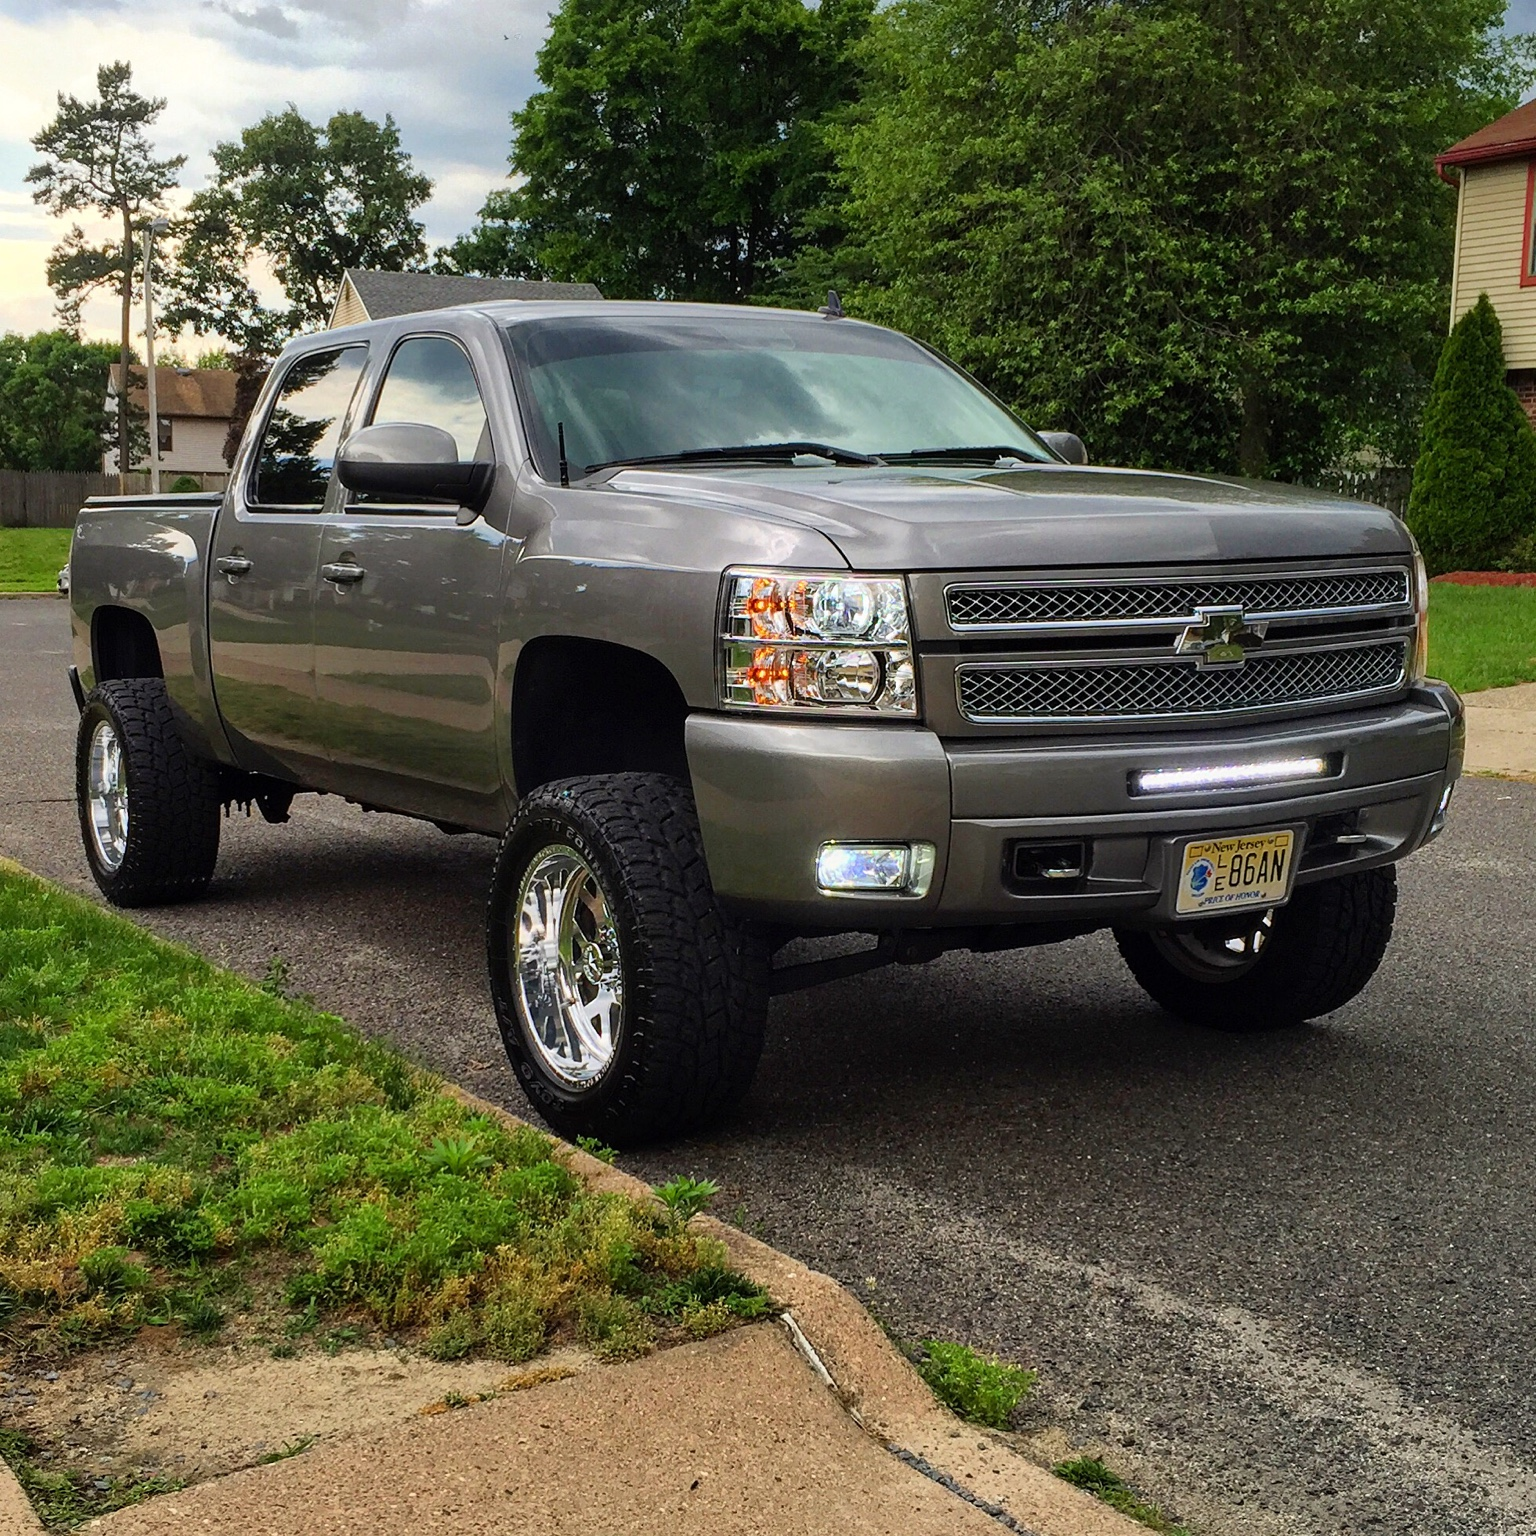 2013 chevy silverado lt z71 lifted chevy truck forum gmc truck forum. Black Bedroom Furniture Sets. Home Design Ideas